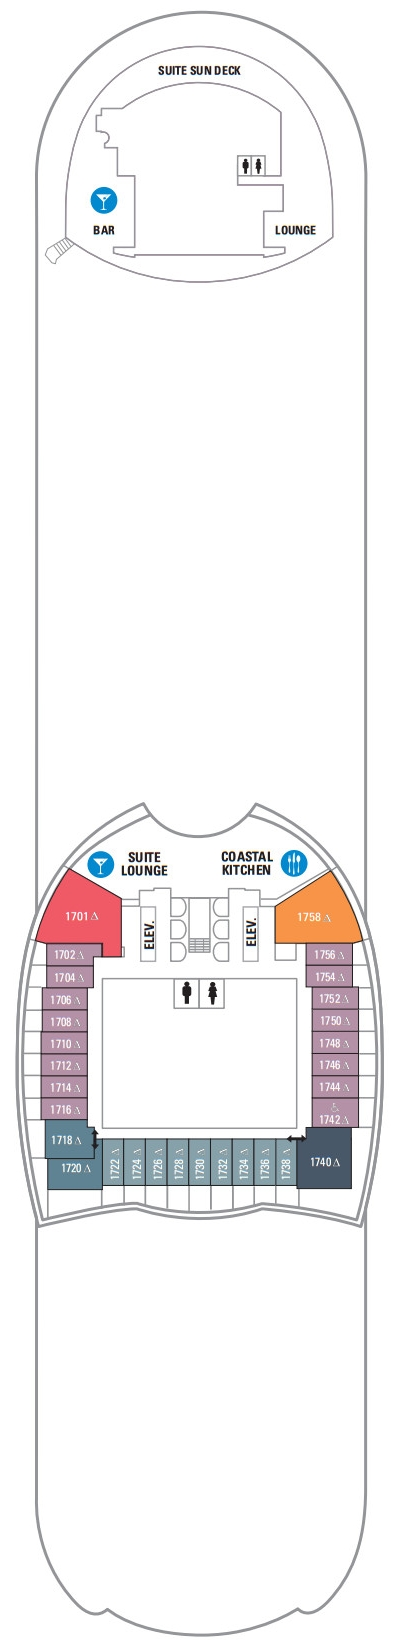 Allure Of The Seas Deck 17 layout